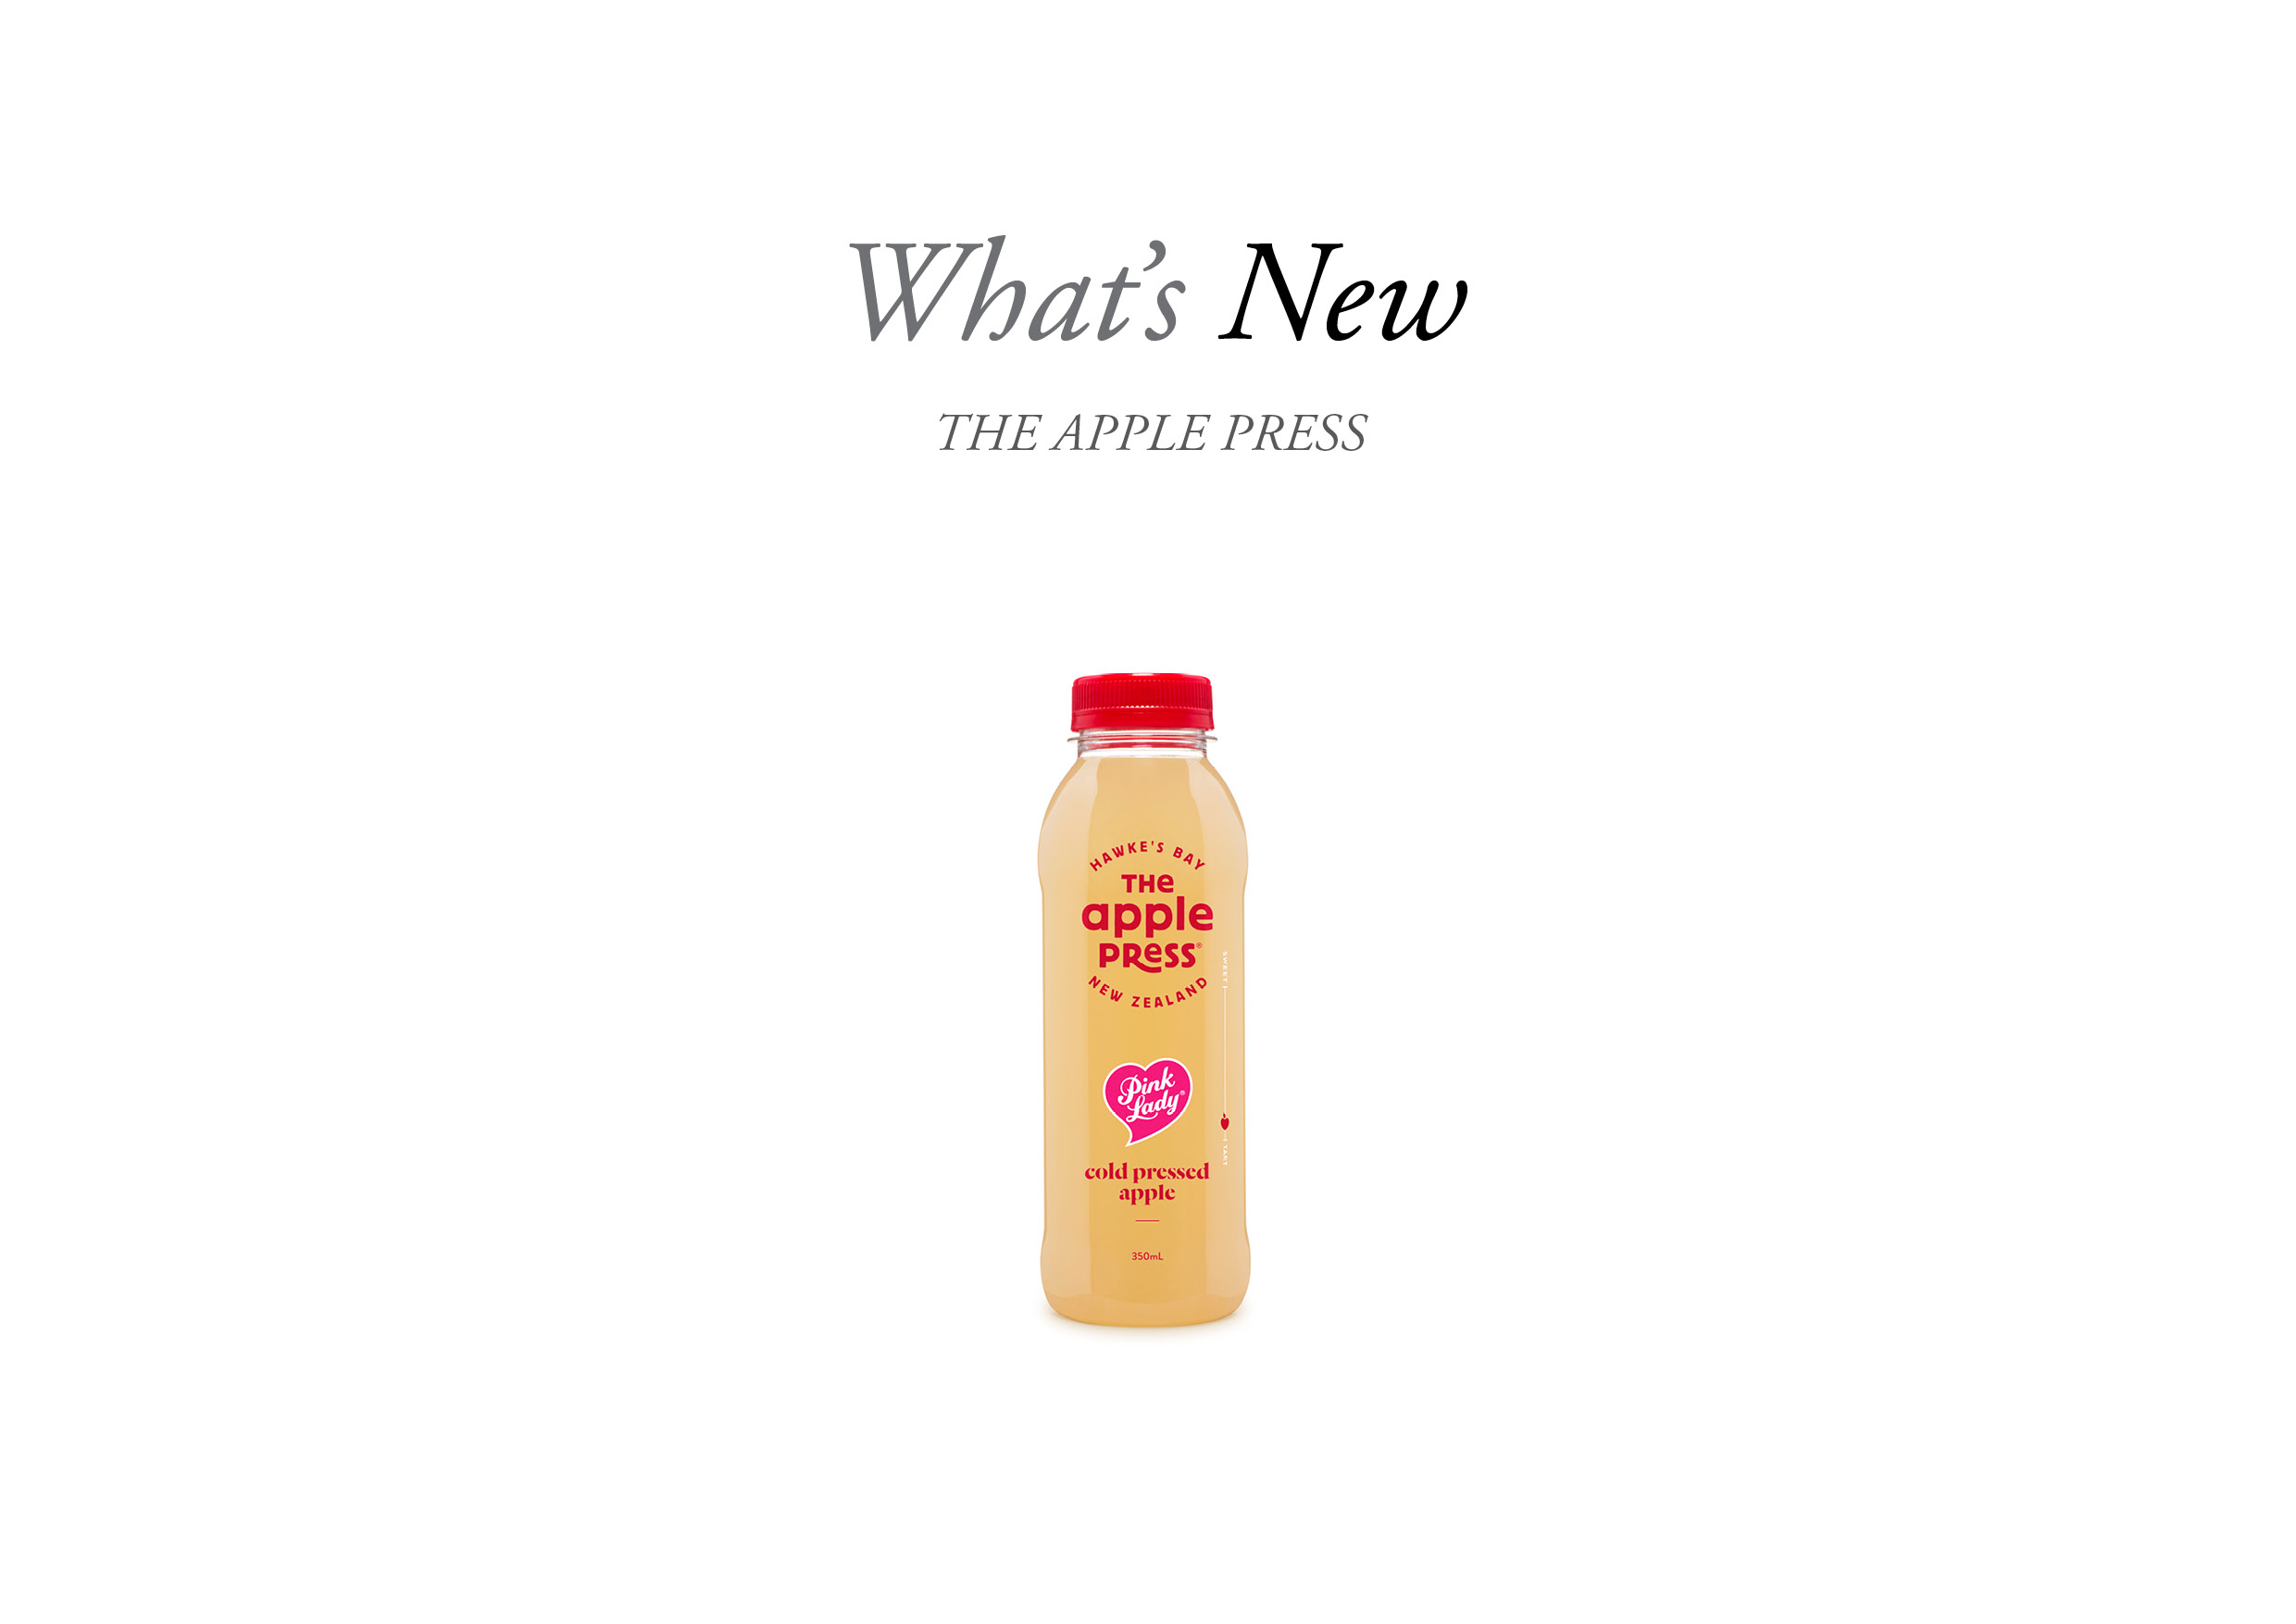 the apple press pink lady bottle with a what's new symbol